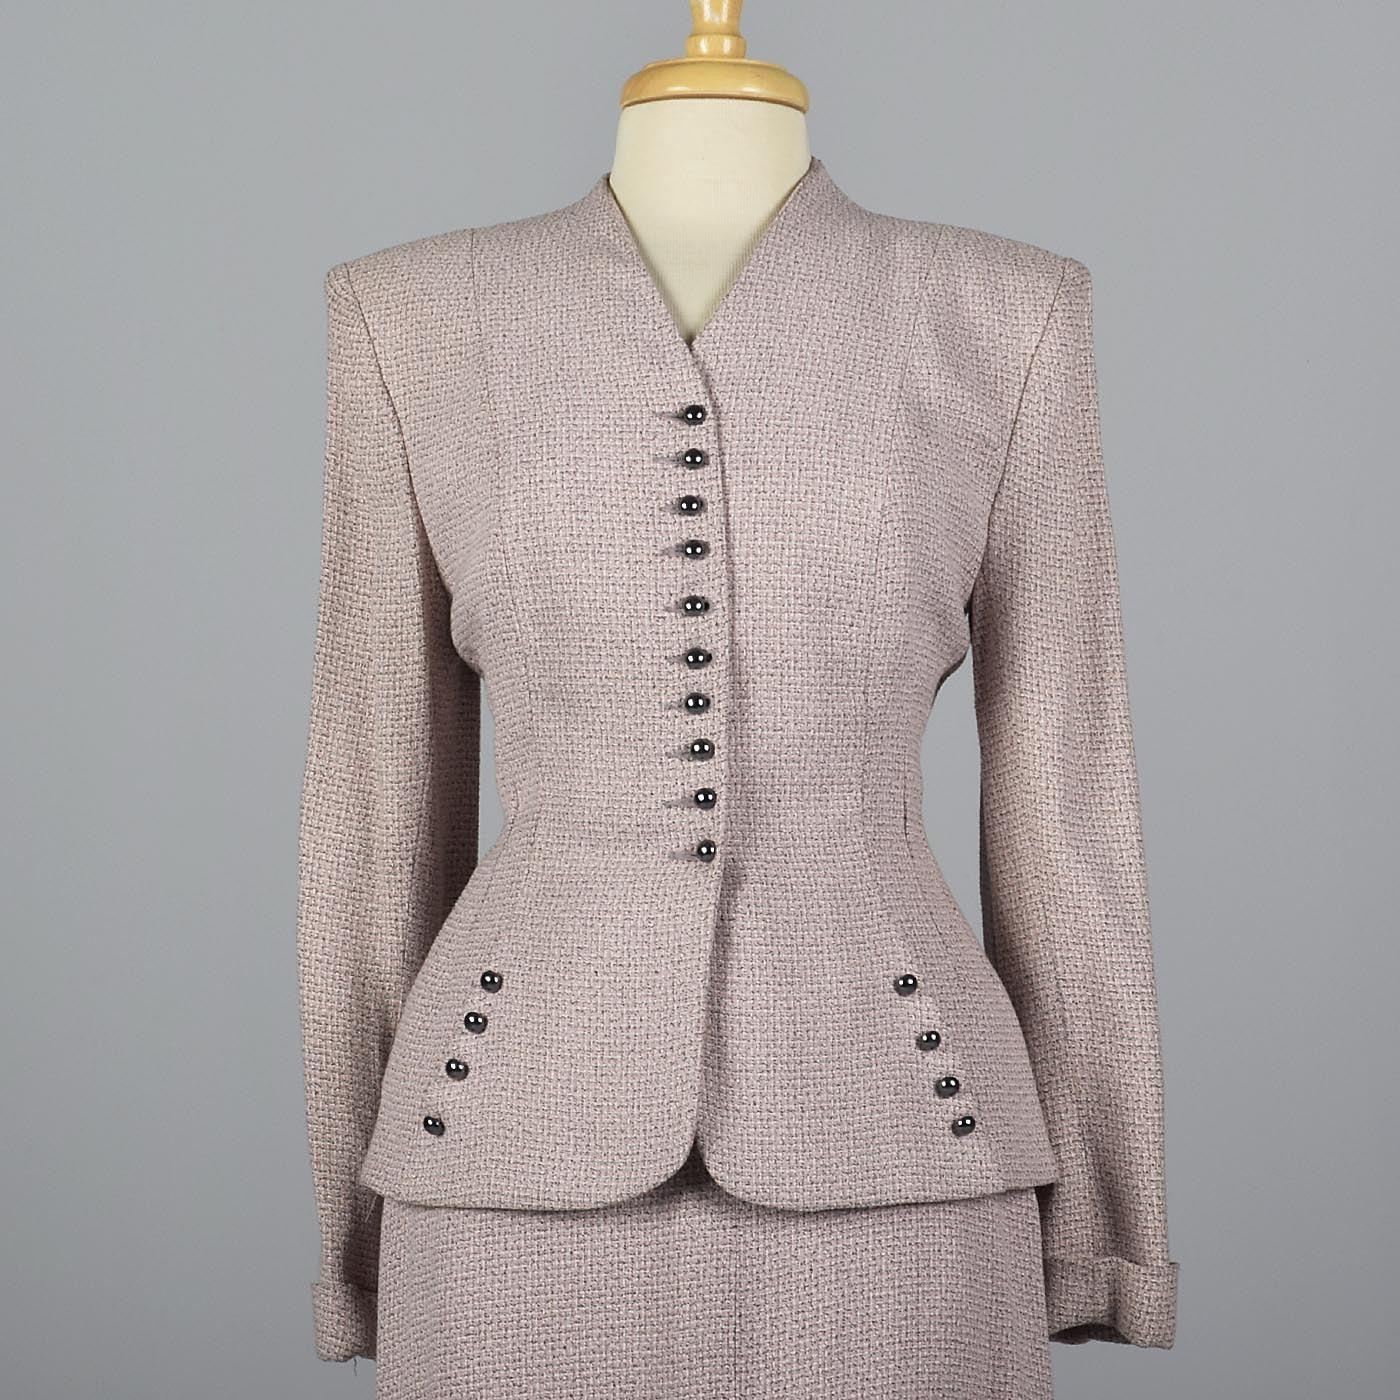 1950s Pink Skirt Suit with Hourglass Silhouette